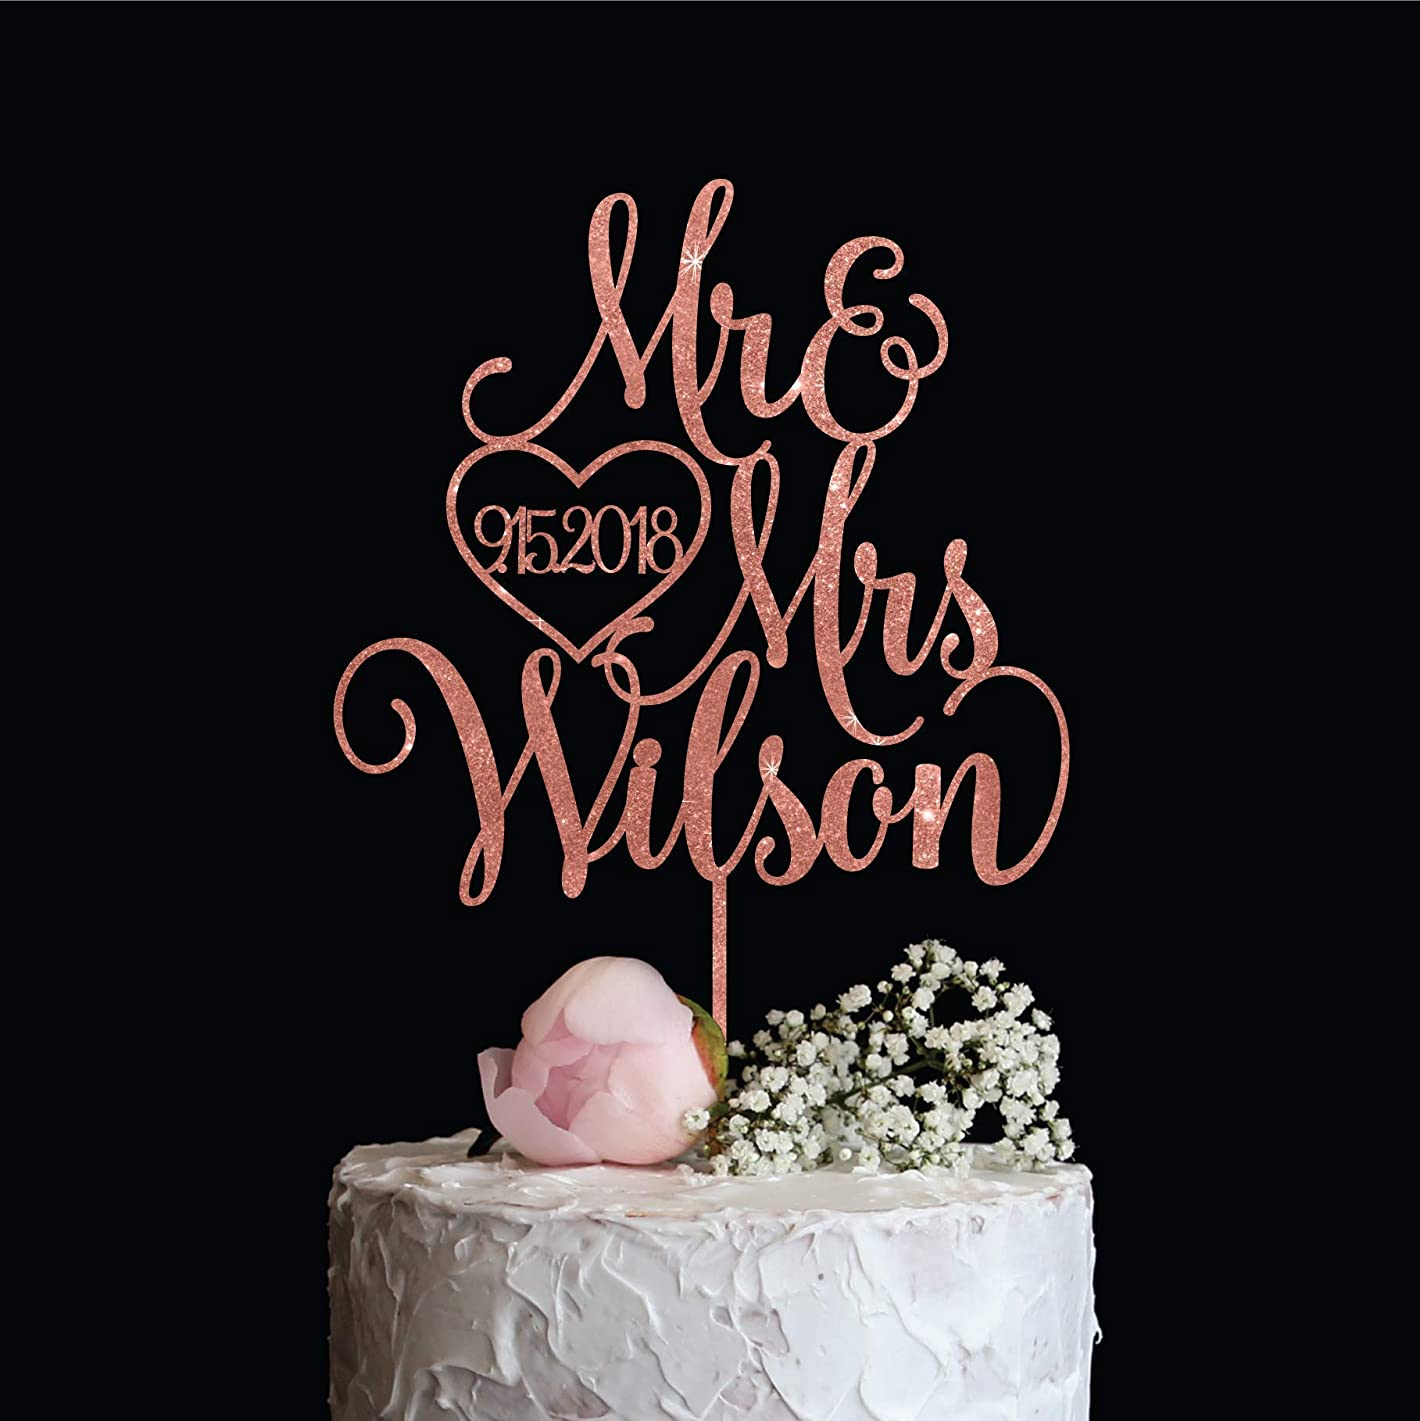 Rose Gold Mr & Mrs Wedding Cake Topper with Last name and Date, Elegant Custom Mr and Mrs Cake Topper, Personalised cake topper also available in Gold, Silver or Champagne Glitter